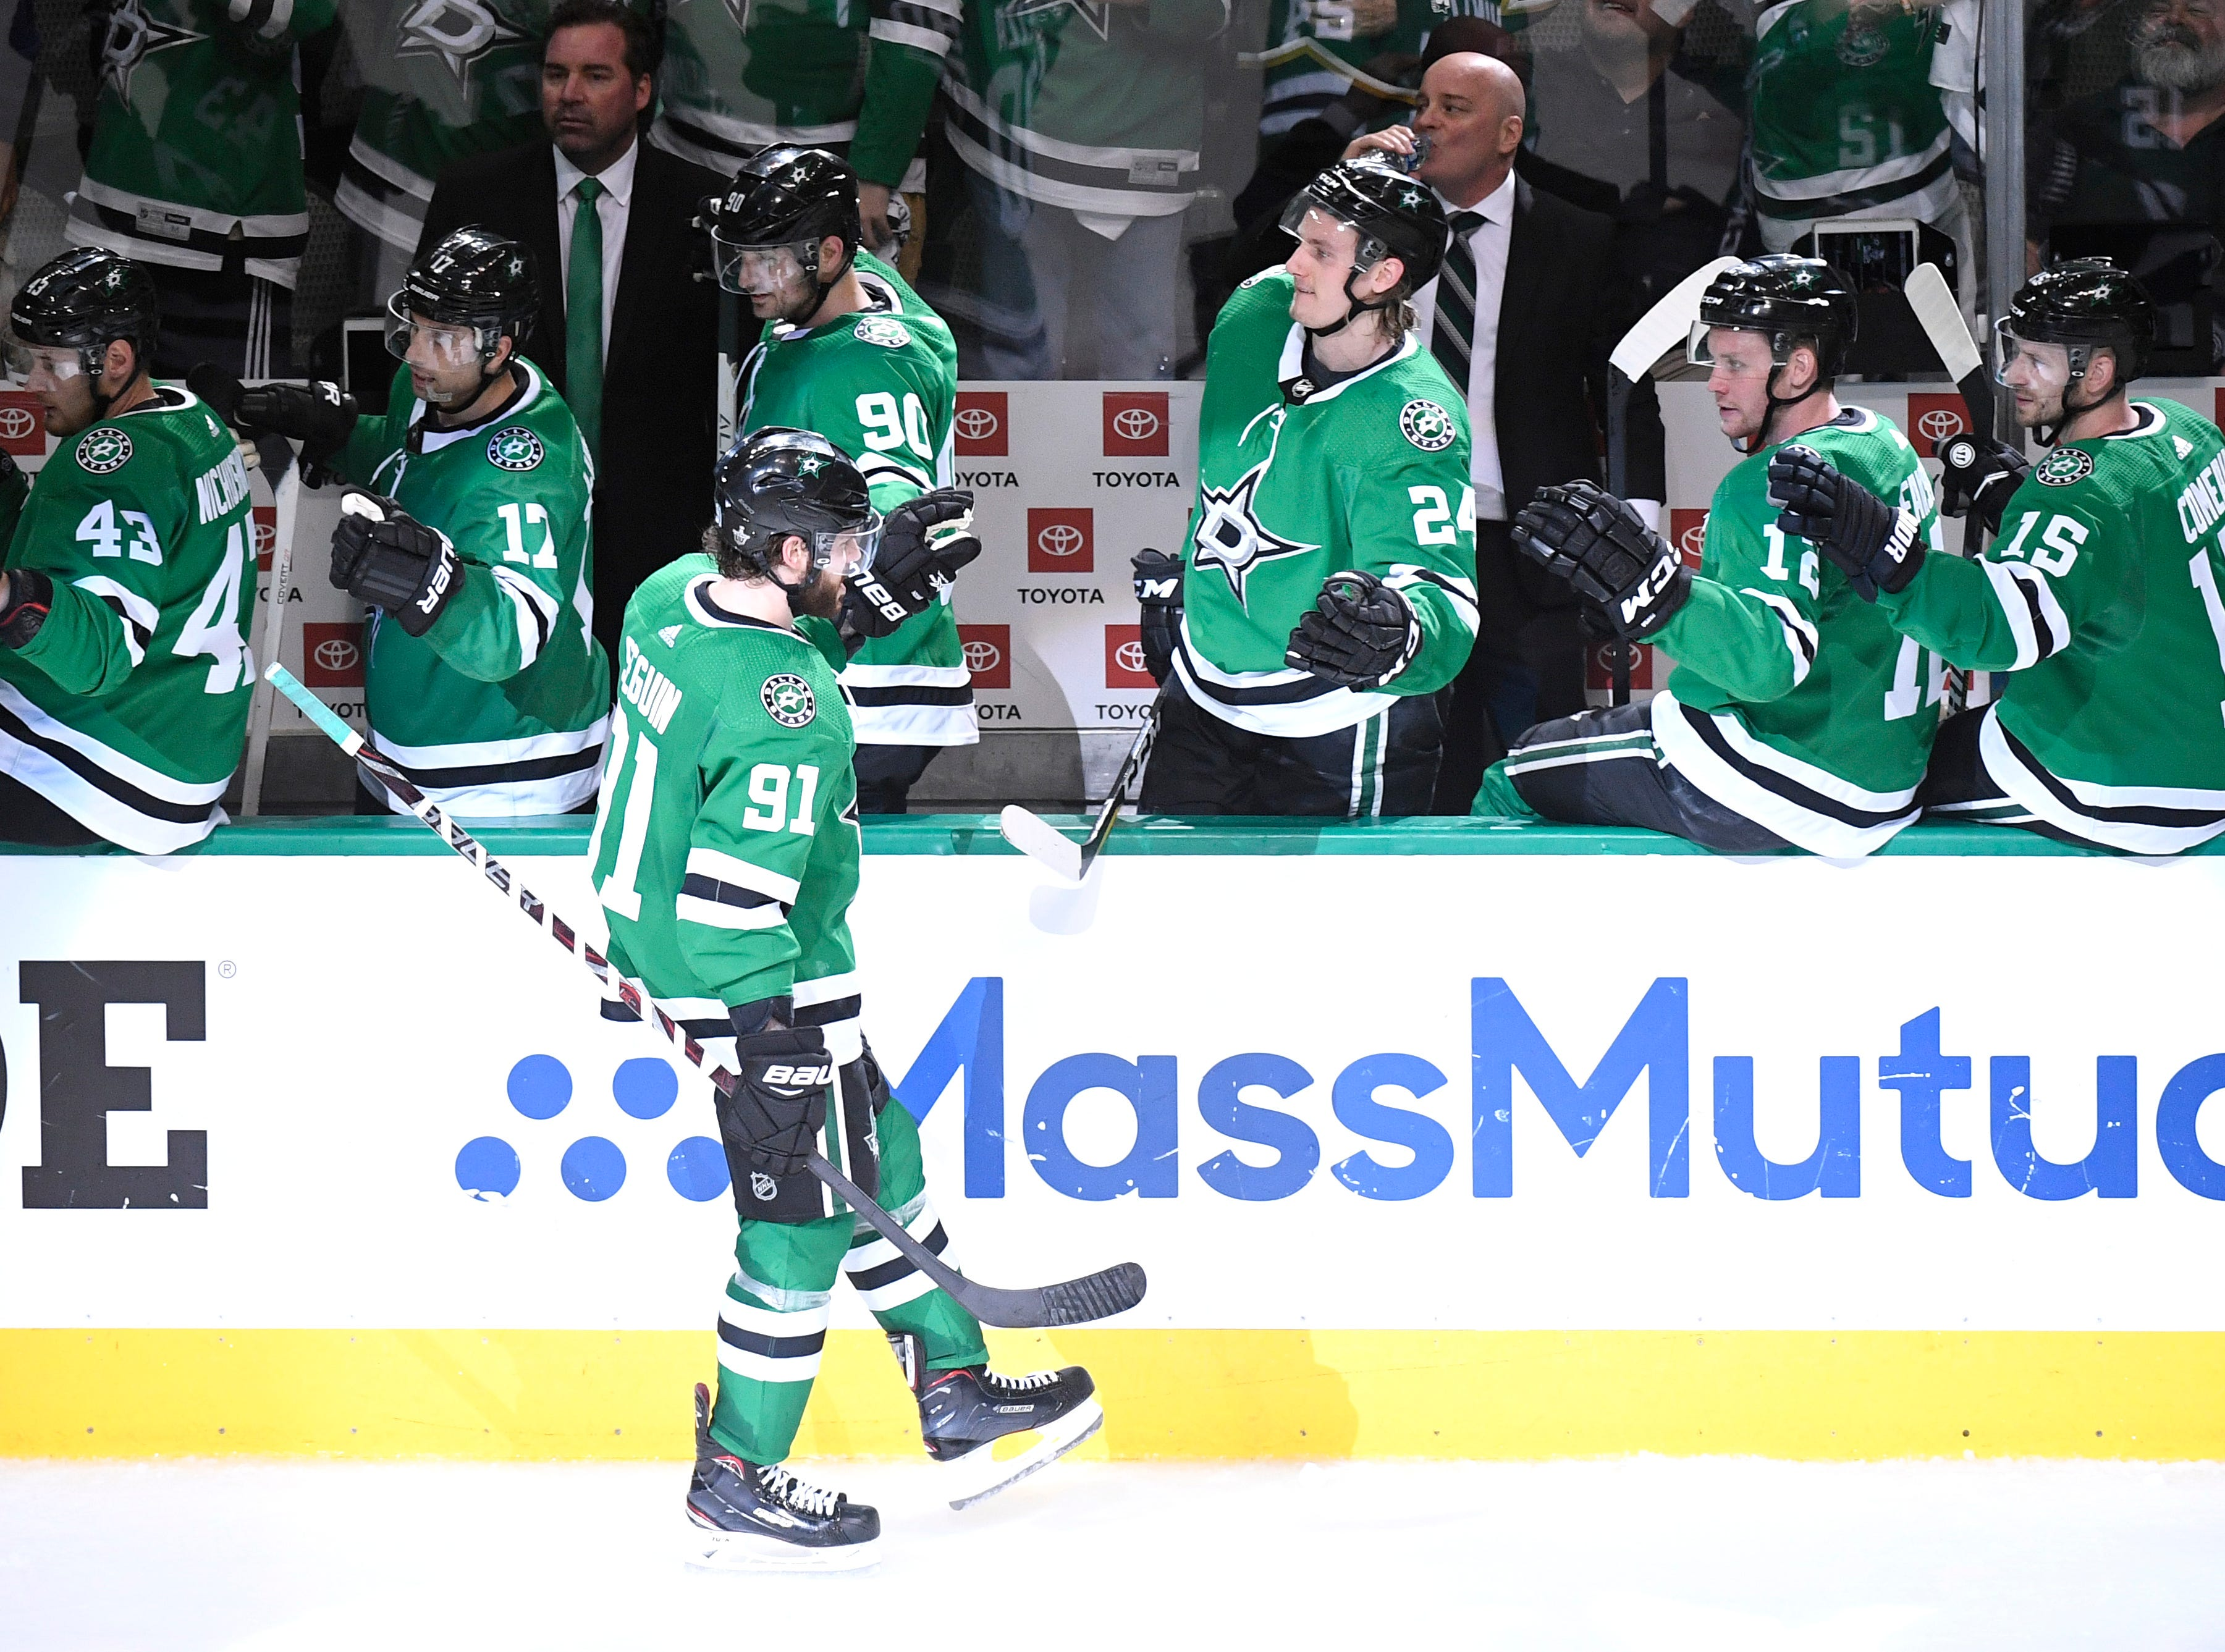 Dallas Stars center Tyler Seguin (91) celebrates his goal during the third period of the divisional semifinal game against the Nashville Predators at the American Airlines Center in Dallas, Texas., Monday, April 15, 2019.